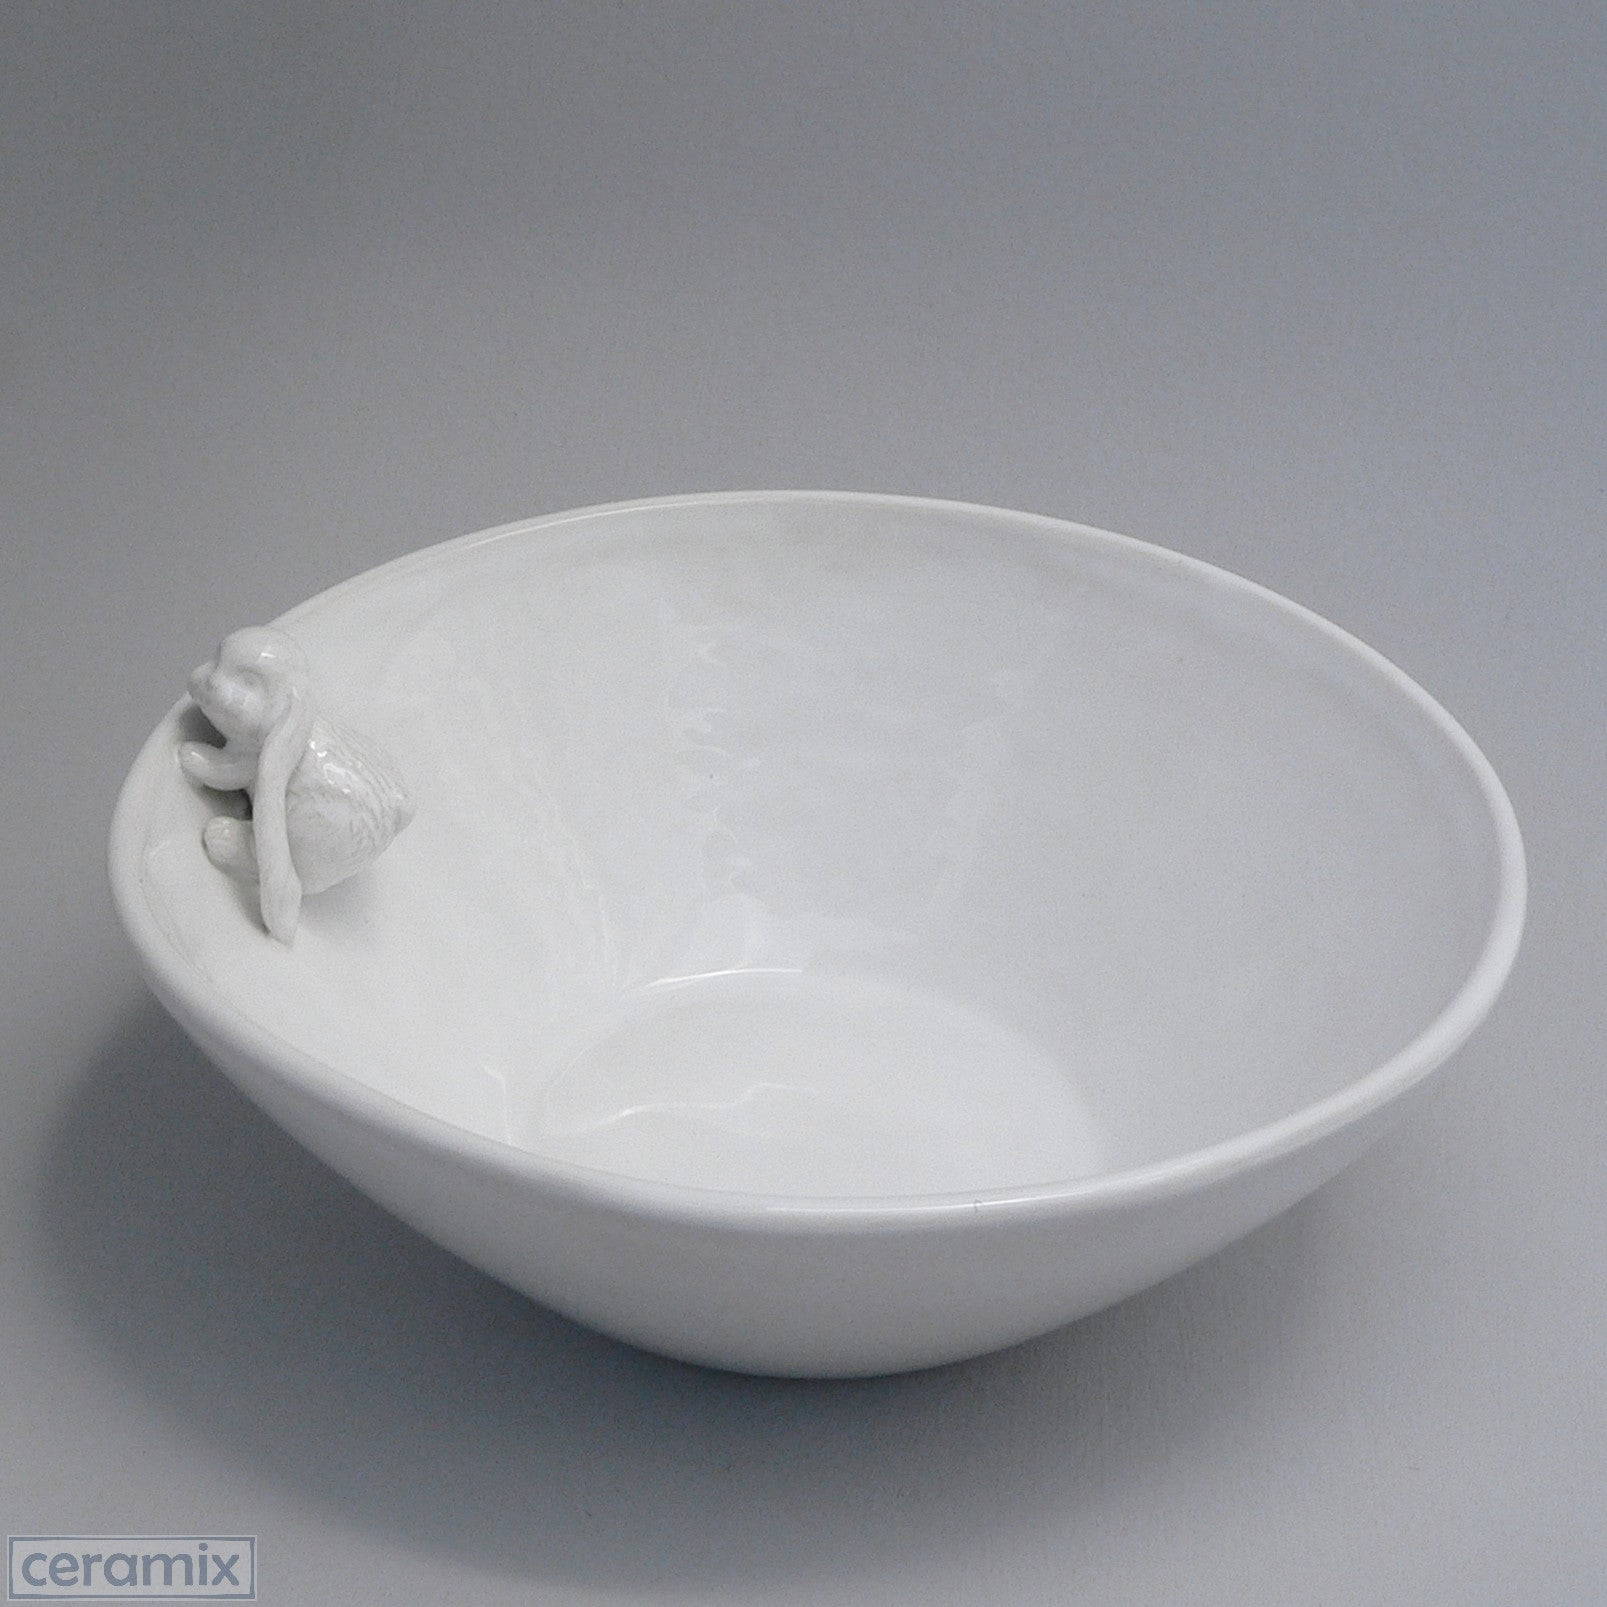 Ceramic Crawling Bunny White Fruit Bowl in Terracotta Clay glazed White by Ceramix